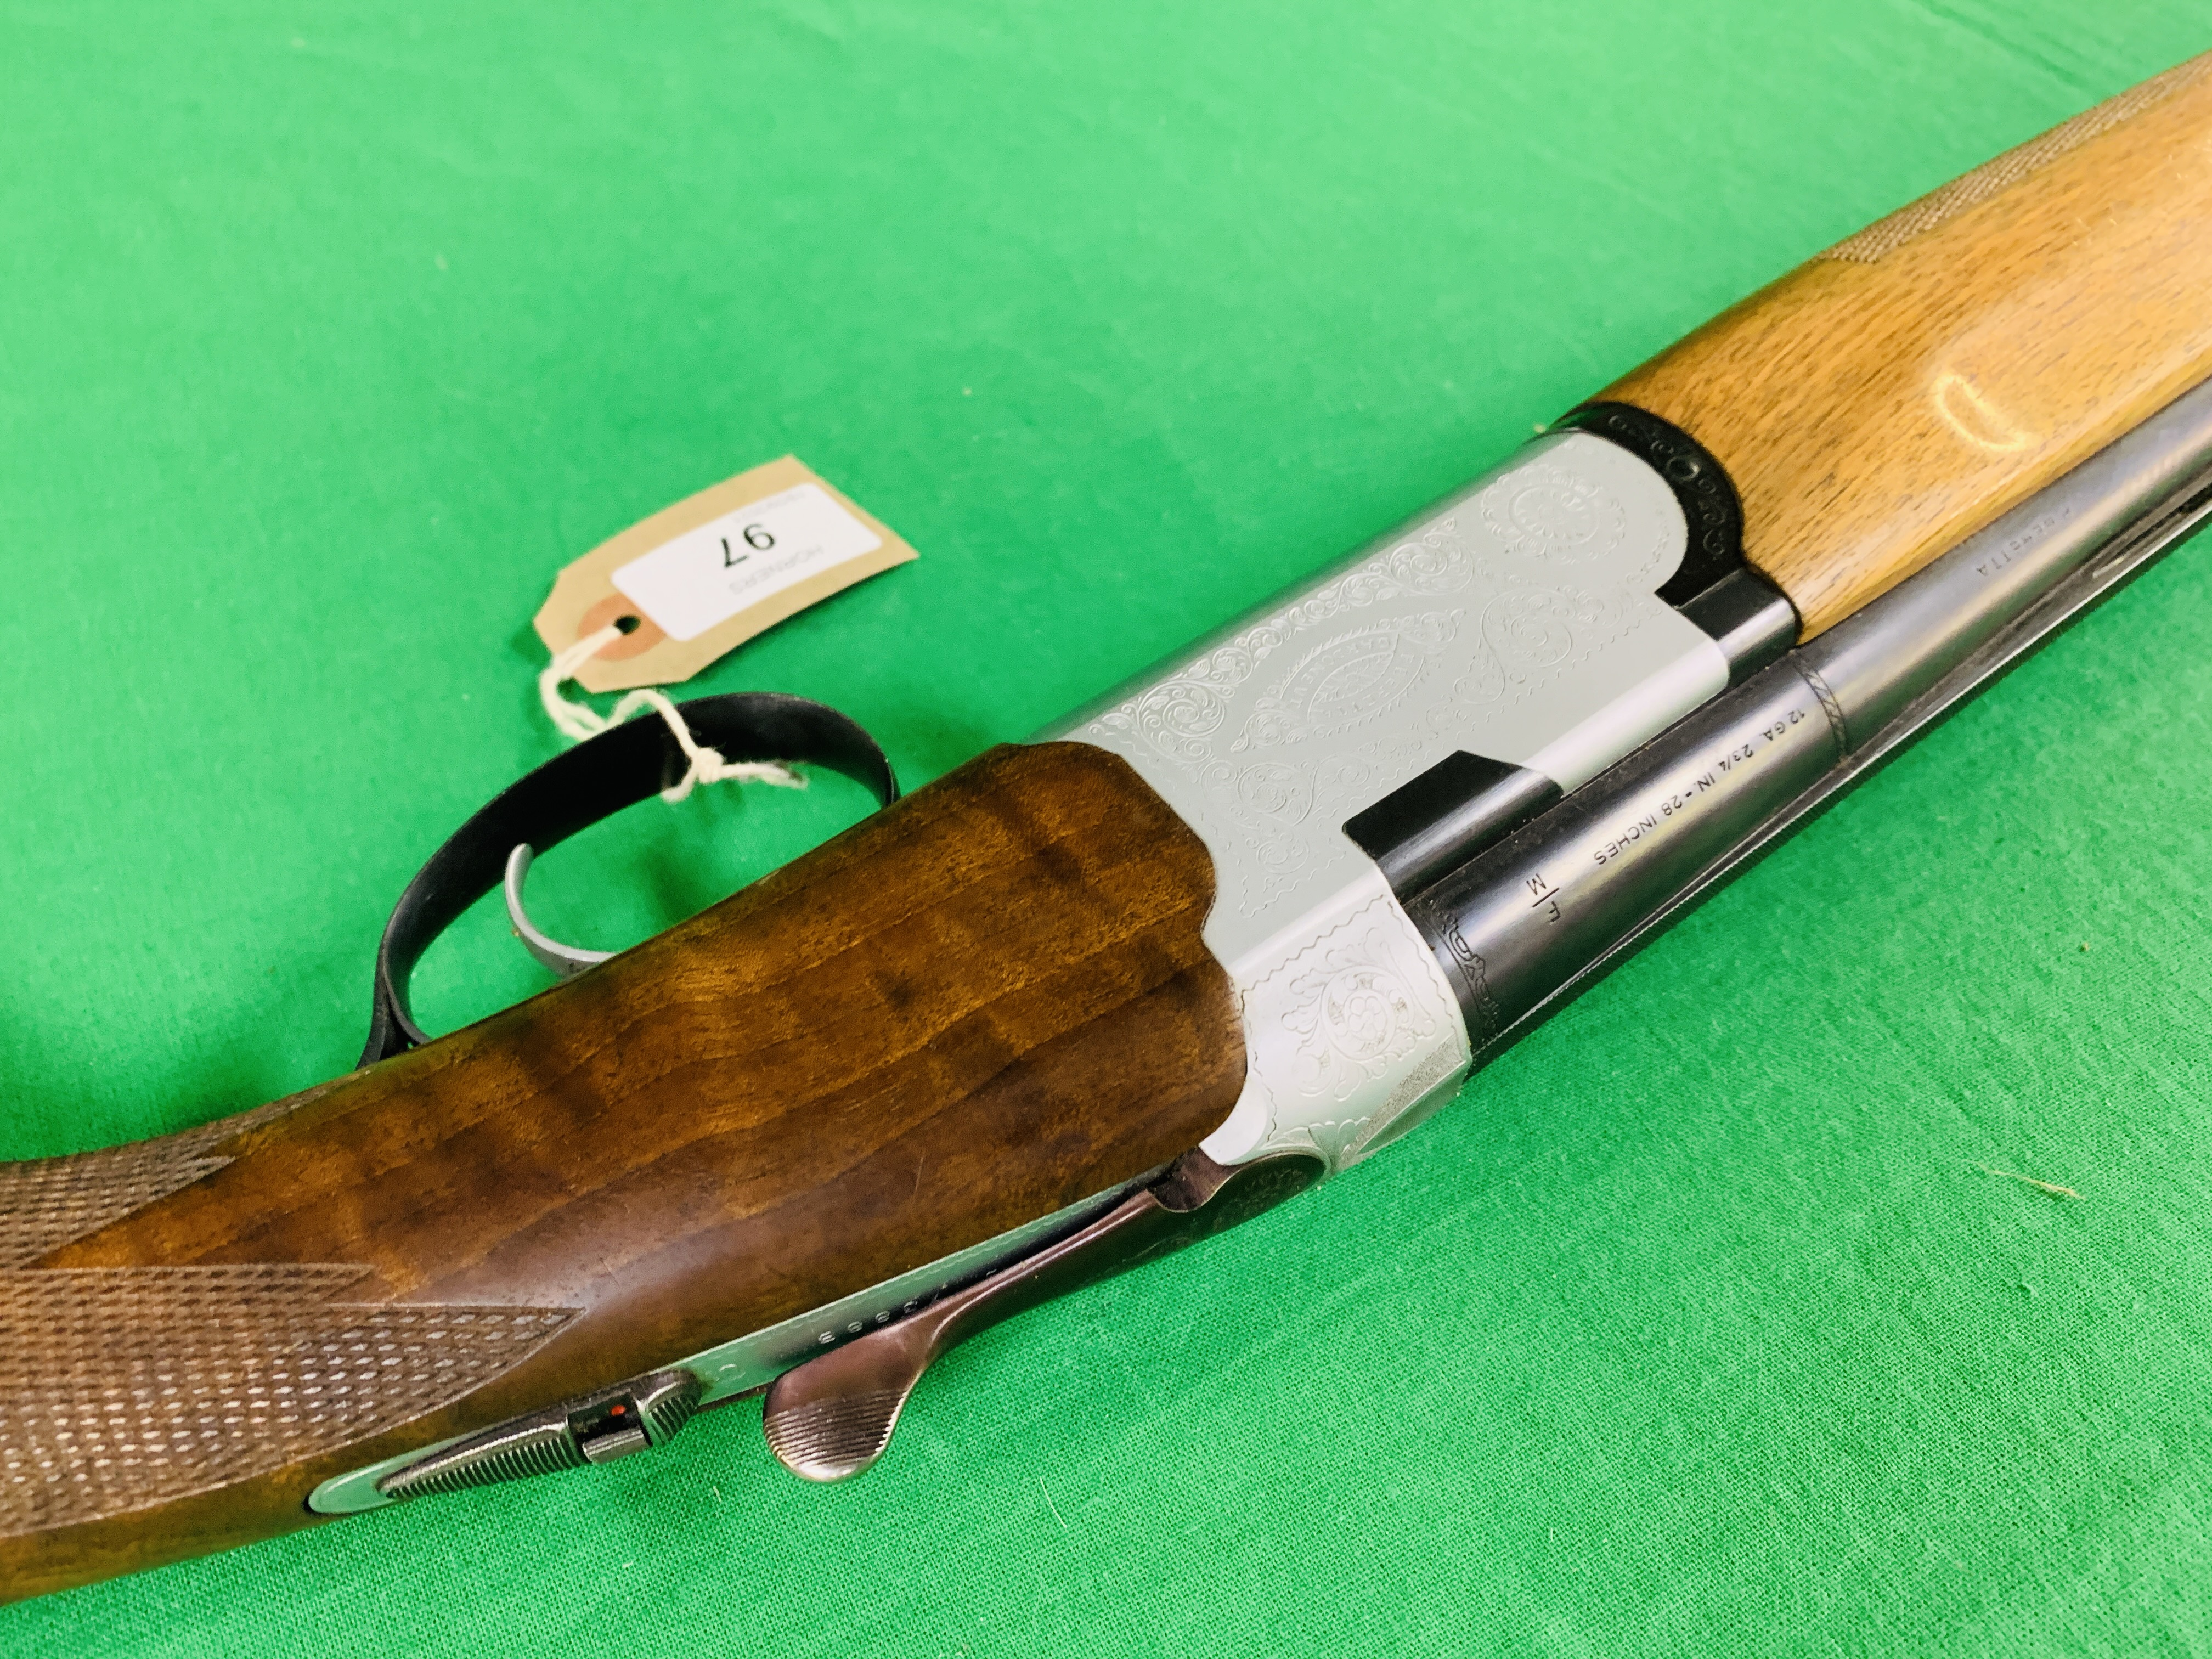 12 BORE BERETTA OVER AND UNDER SHOTGUN # B17388B WITH GUN SLEEVE - (ALL GUNS TO BE INSPECTED AND - Image 7 of 9